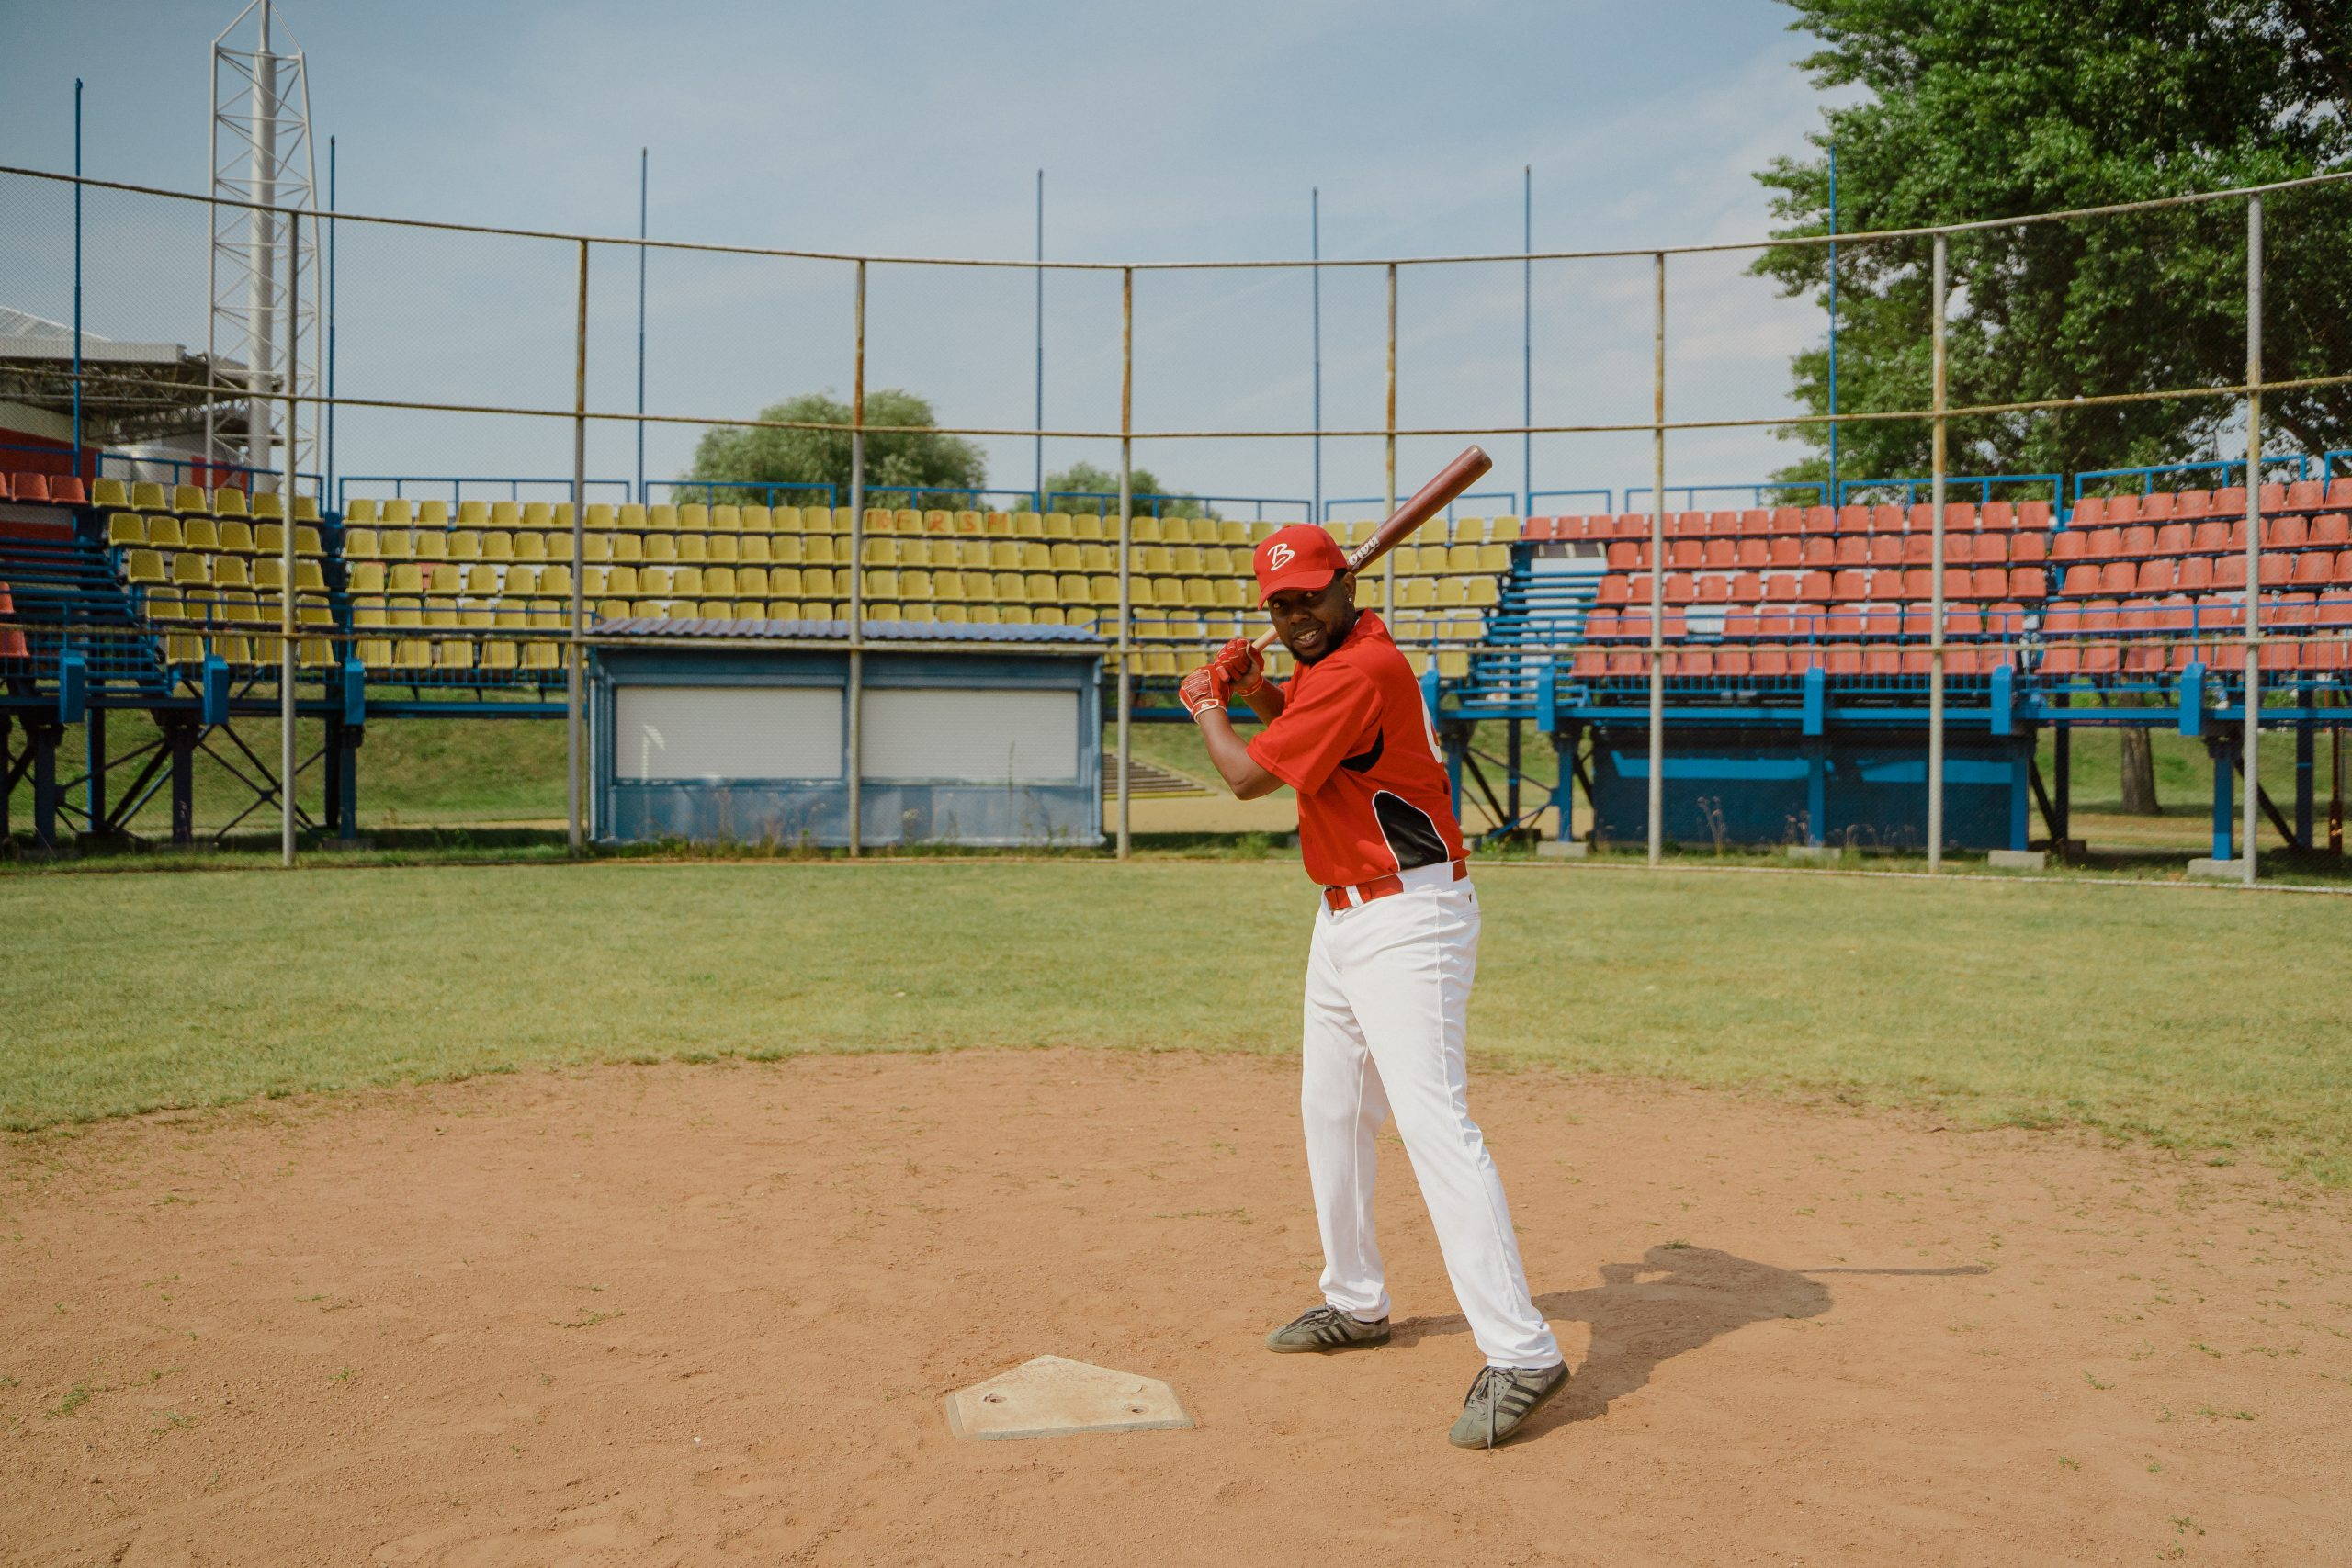 Man in red shirt and white pants playing baseball